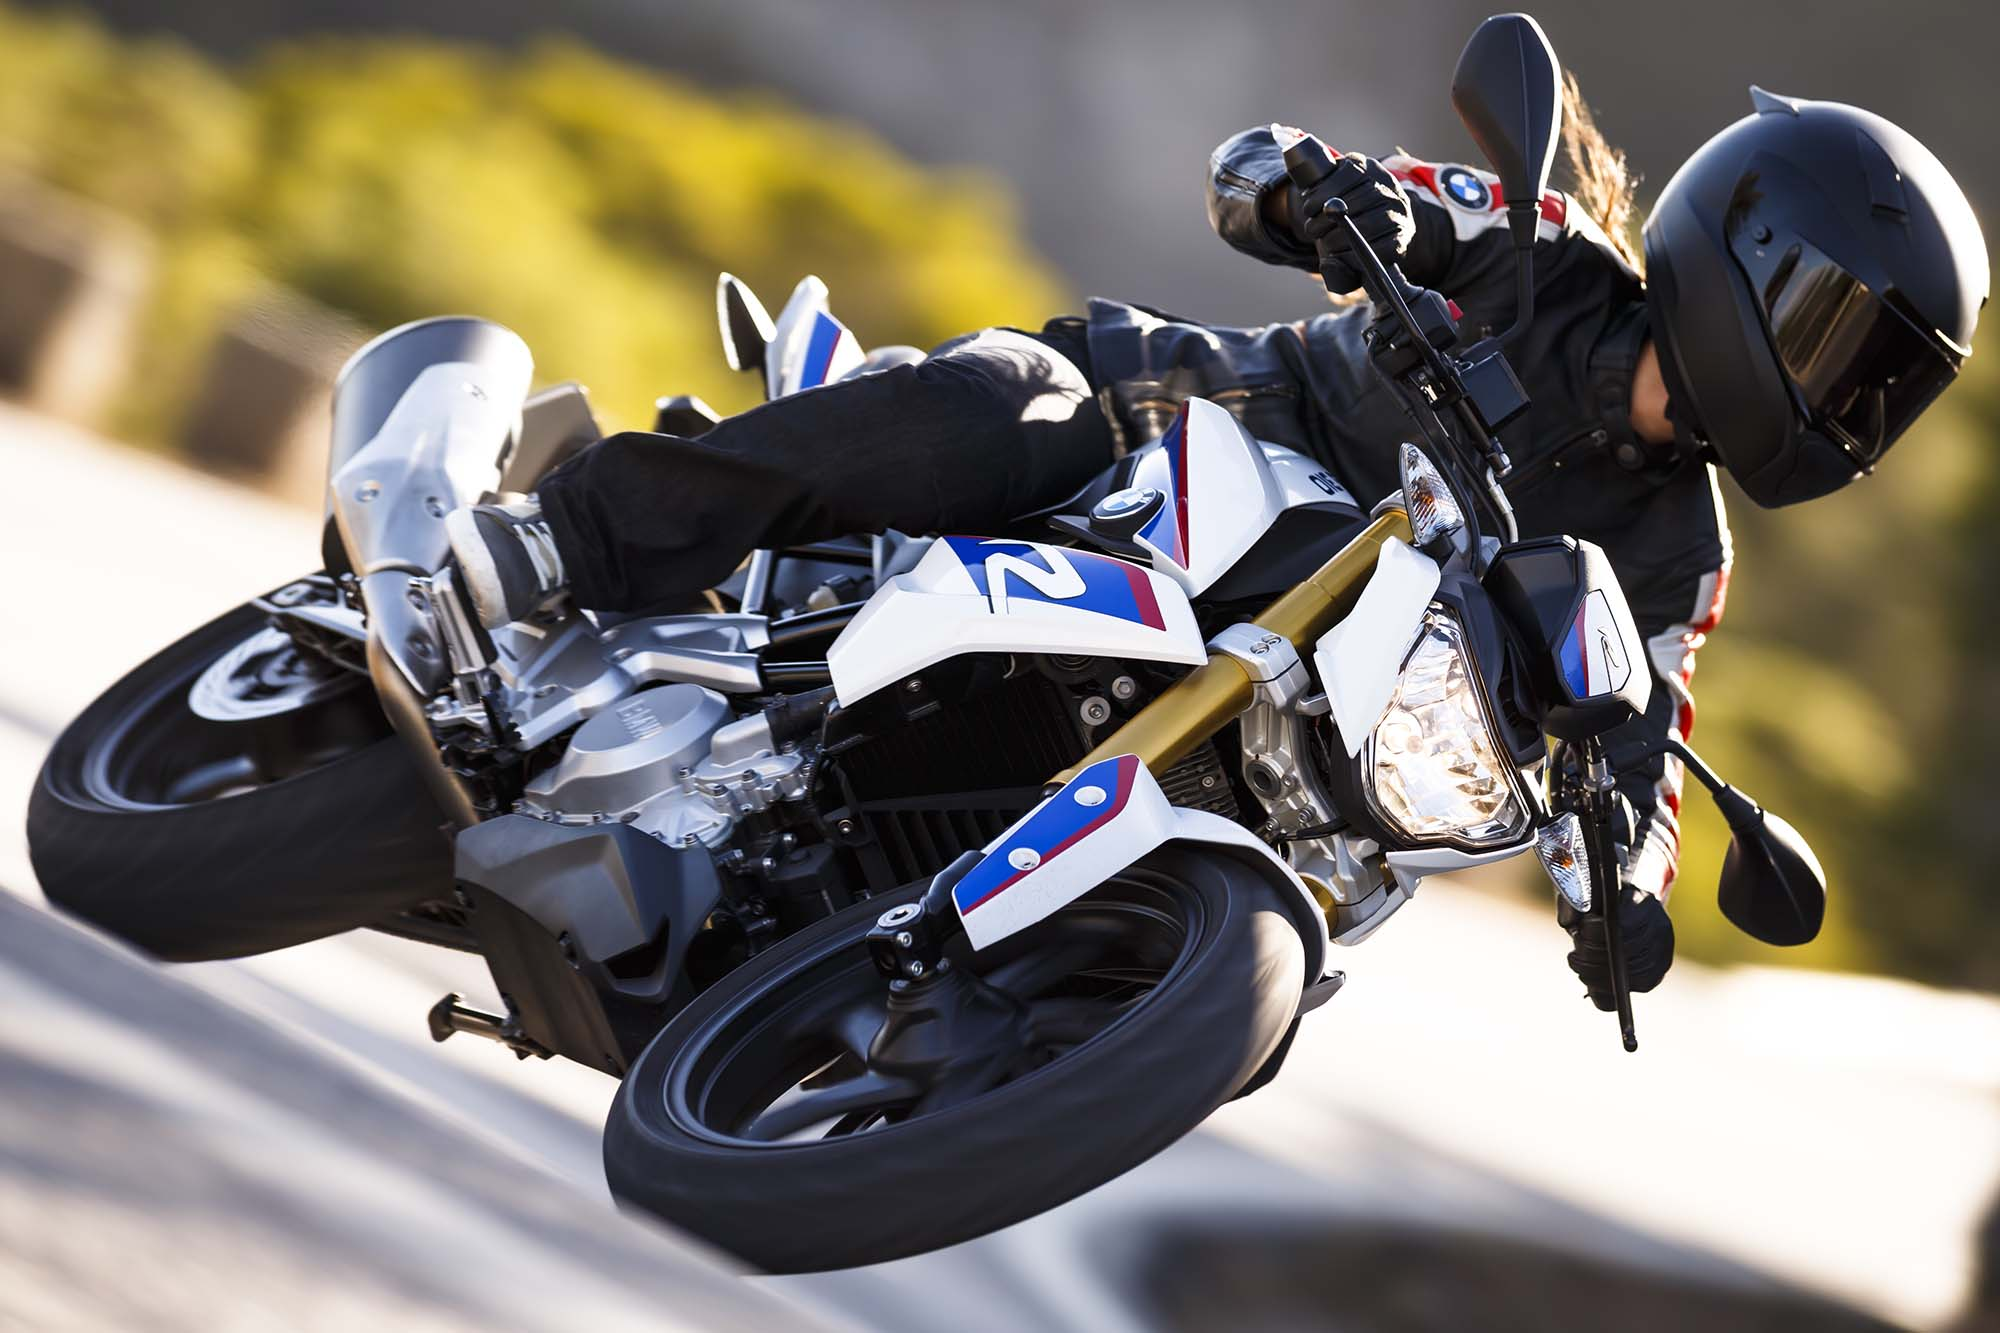 2016 BMW G310R Debuts for New Riders